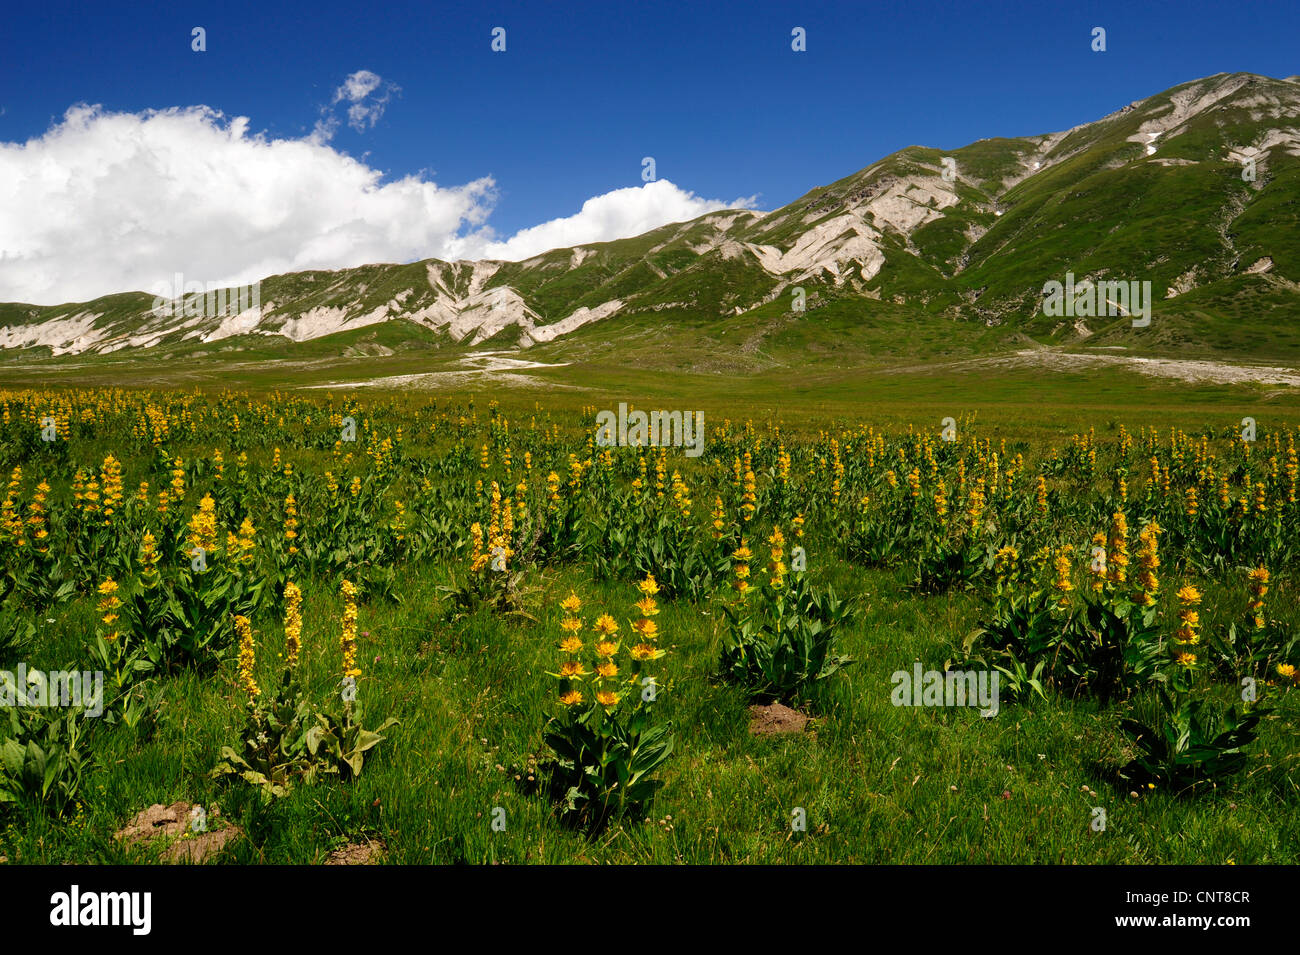 dry meadow plain with mulleins and a mountain range looming in the background, Italy, Nationalpark Abruzzen - Stock Image